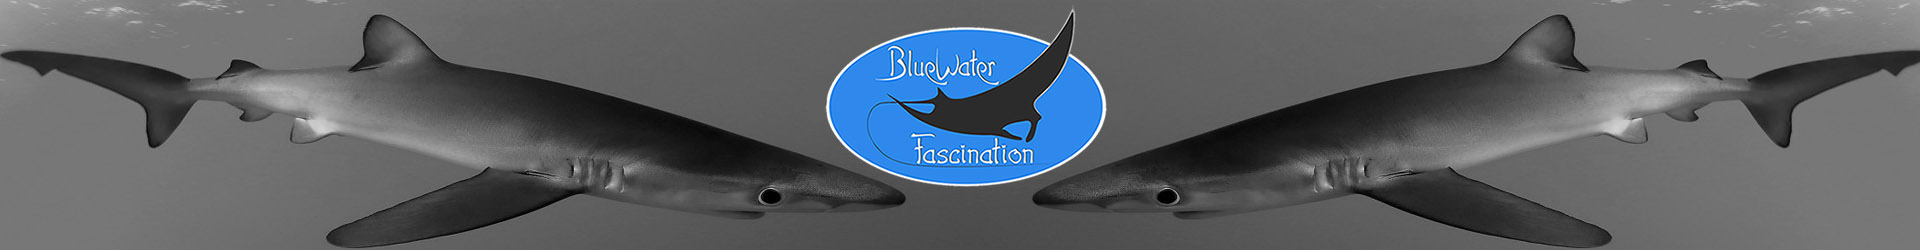 BLUEWATERFASCINATION